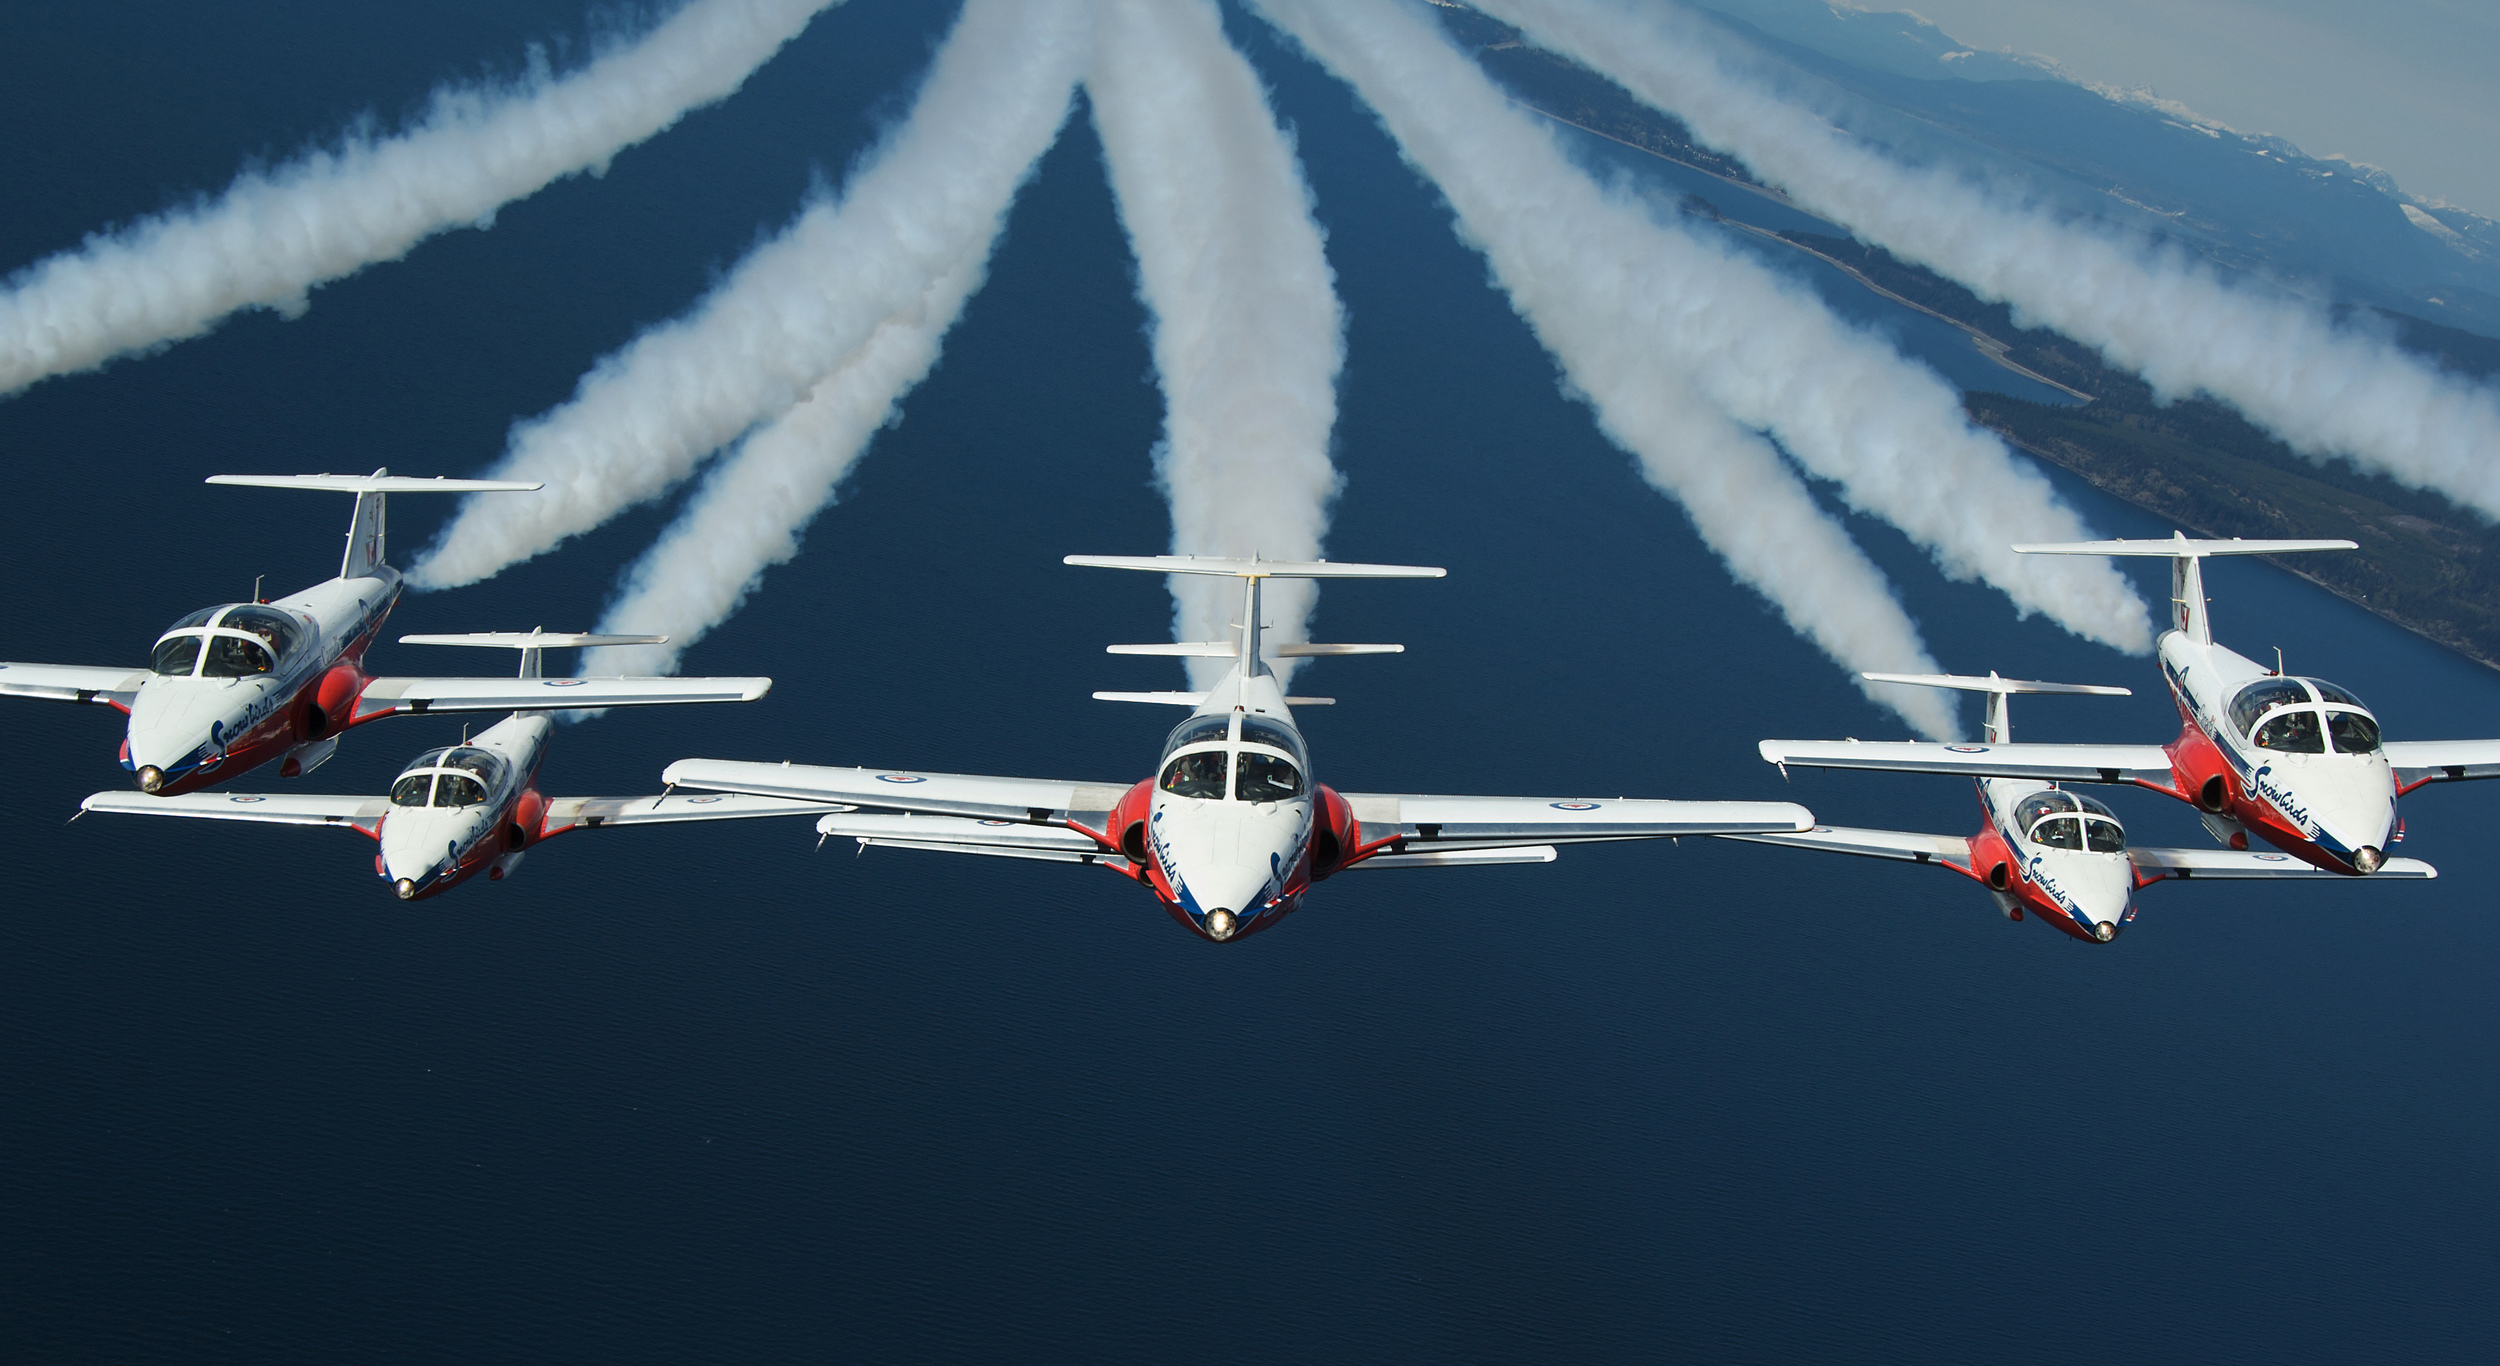 Canadian Snowbirds Formation Flying